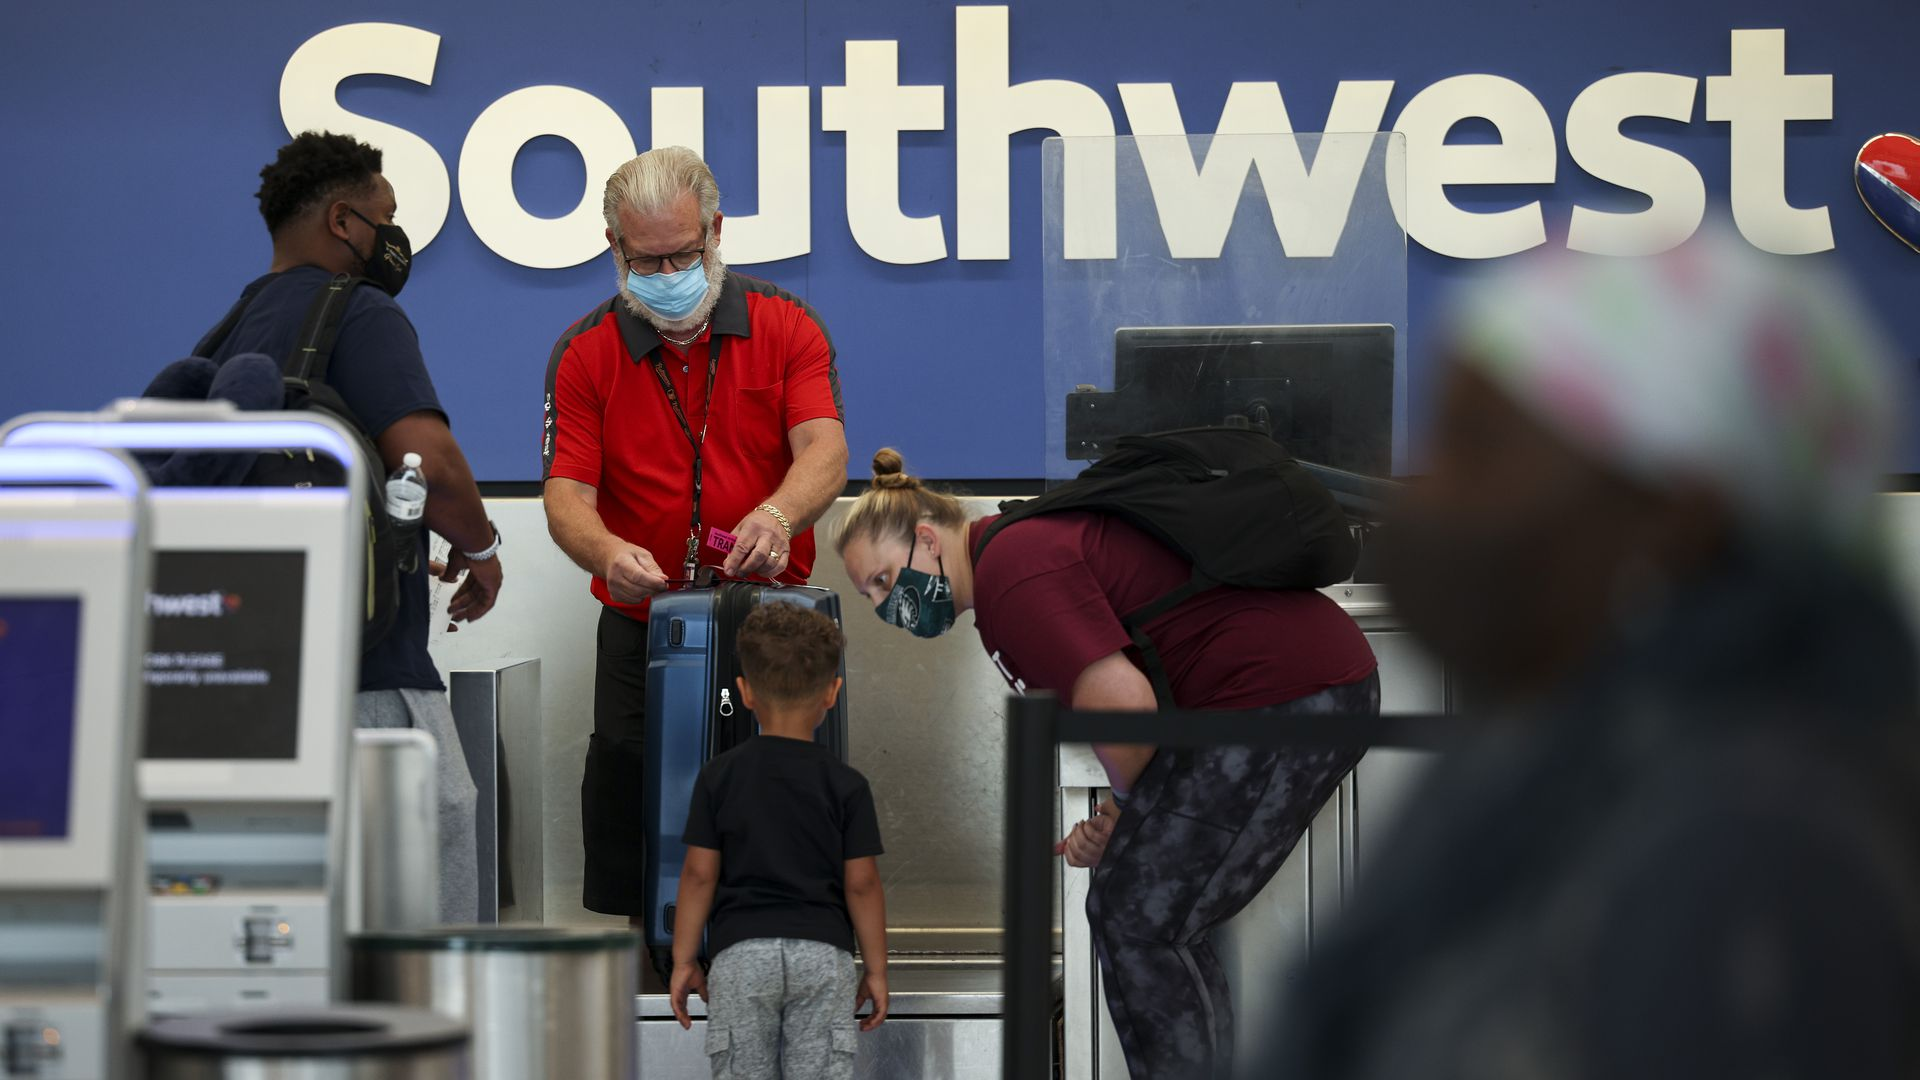 At an airport check-in desk, a masked Southwest employee helps two masked men and a little boy.